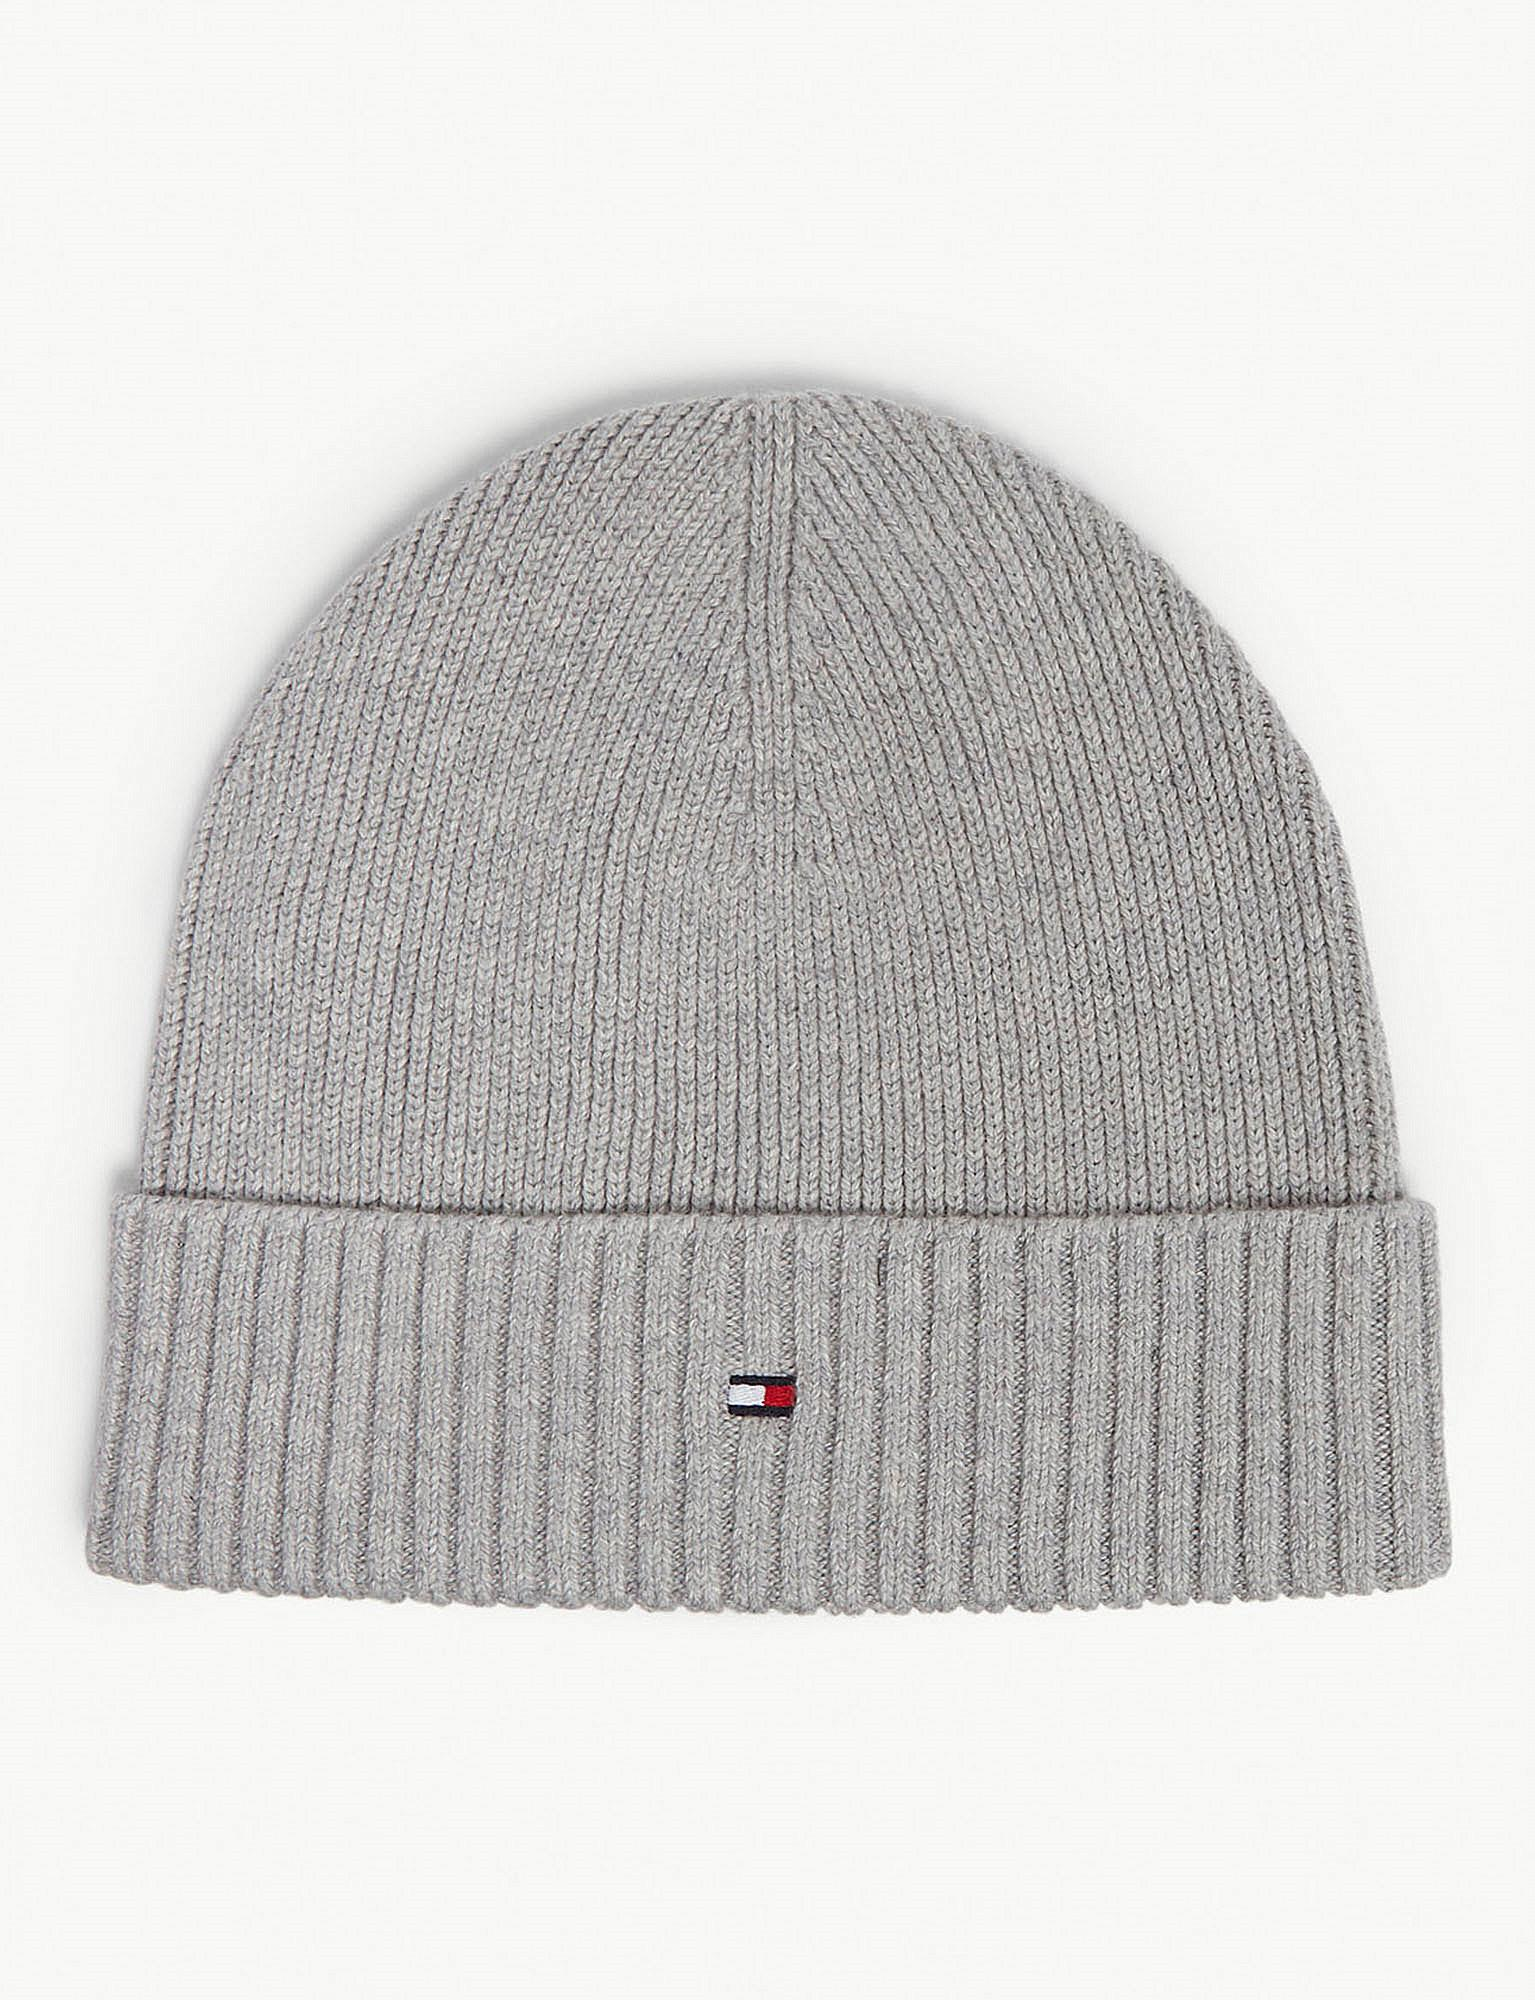 33644d61 Tommy Hilfiger Pima Cotton And Cashmere Beanie in Gray for Men - Lyst